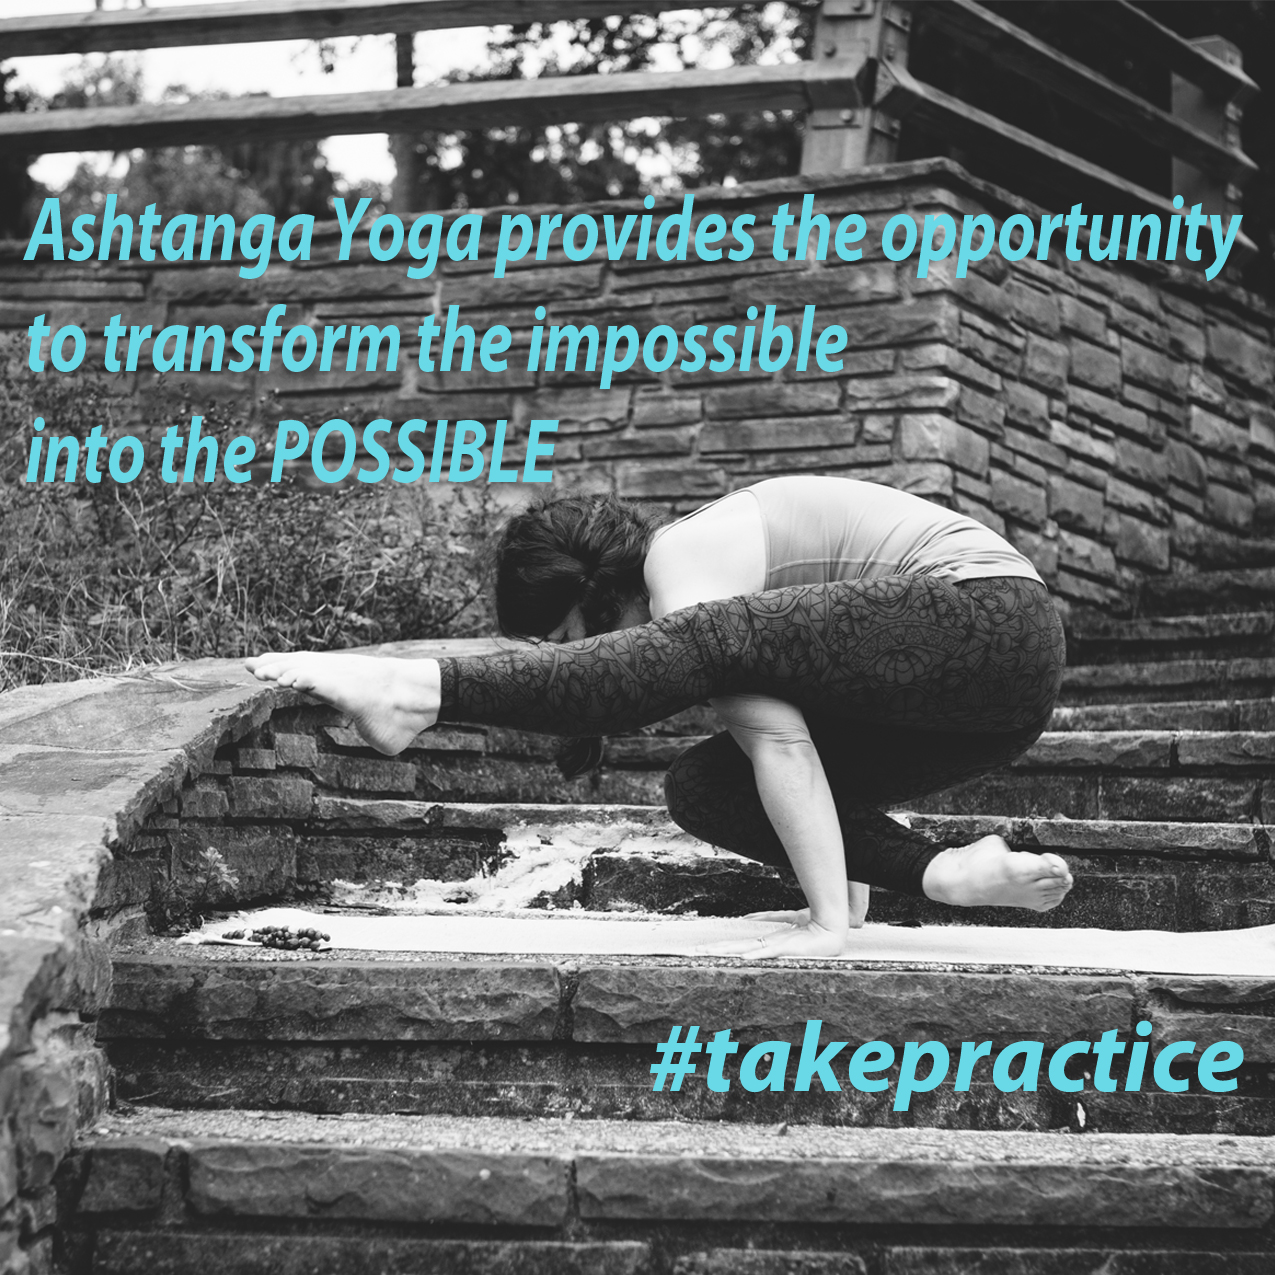 'Ashtanga Yoga provides the opportunity to transform the impossible into the POSSIBLE'